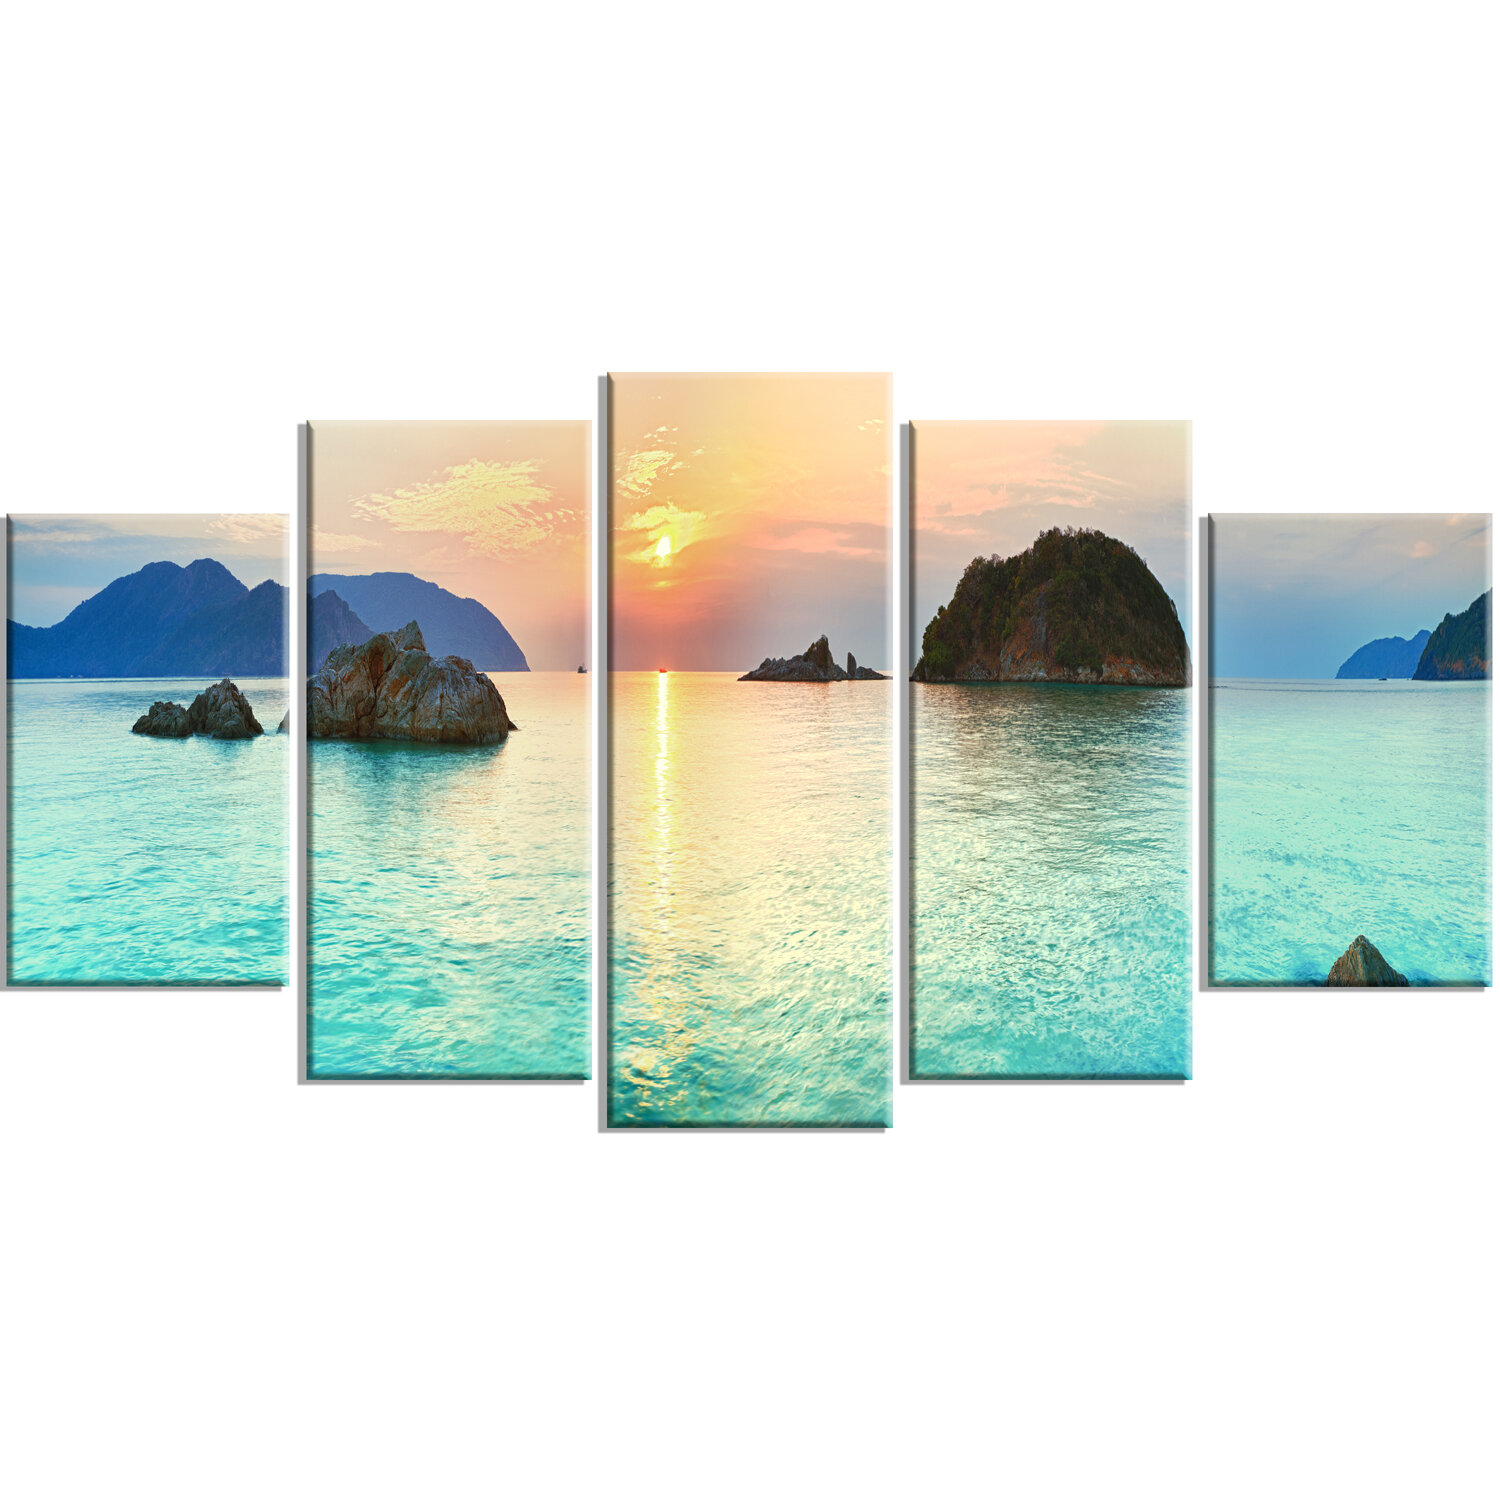 Bay Isle Home Sunrise Panorama 5 Piece Wall Art On Wrapped Canvas Set Wayfair